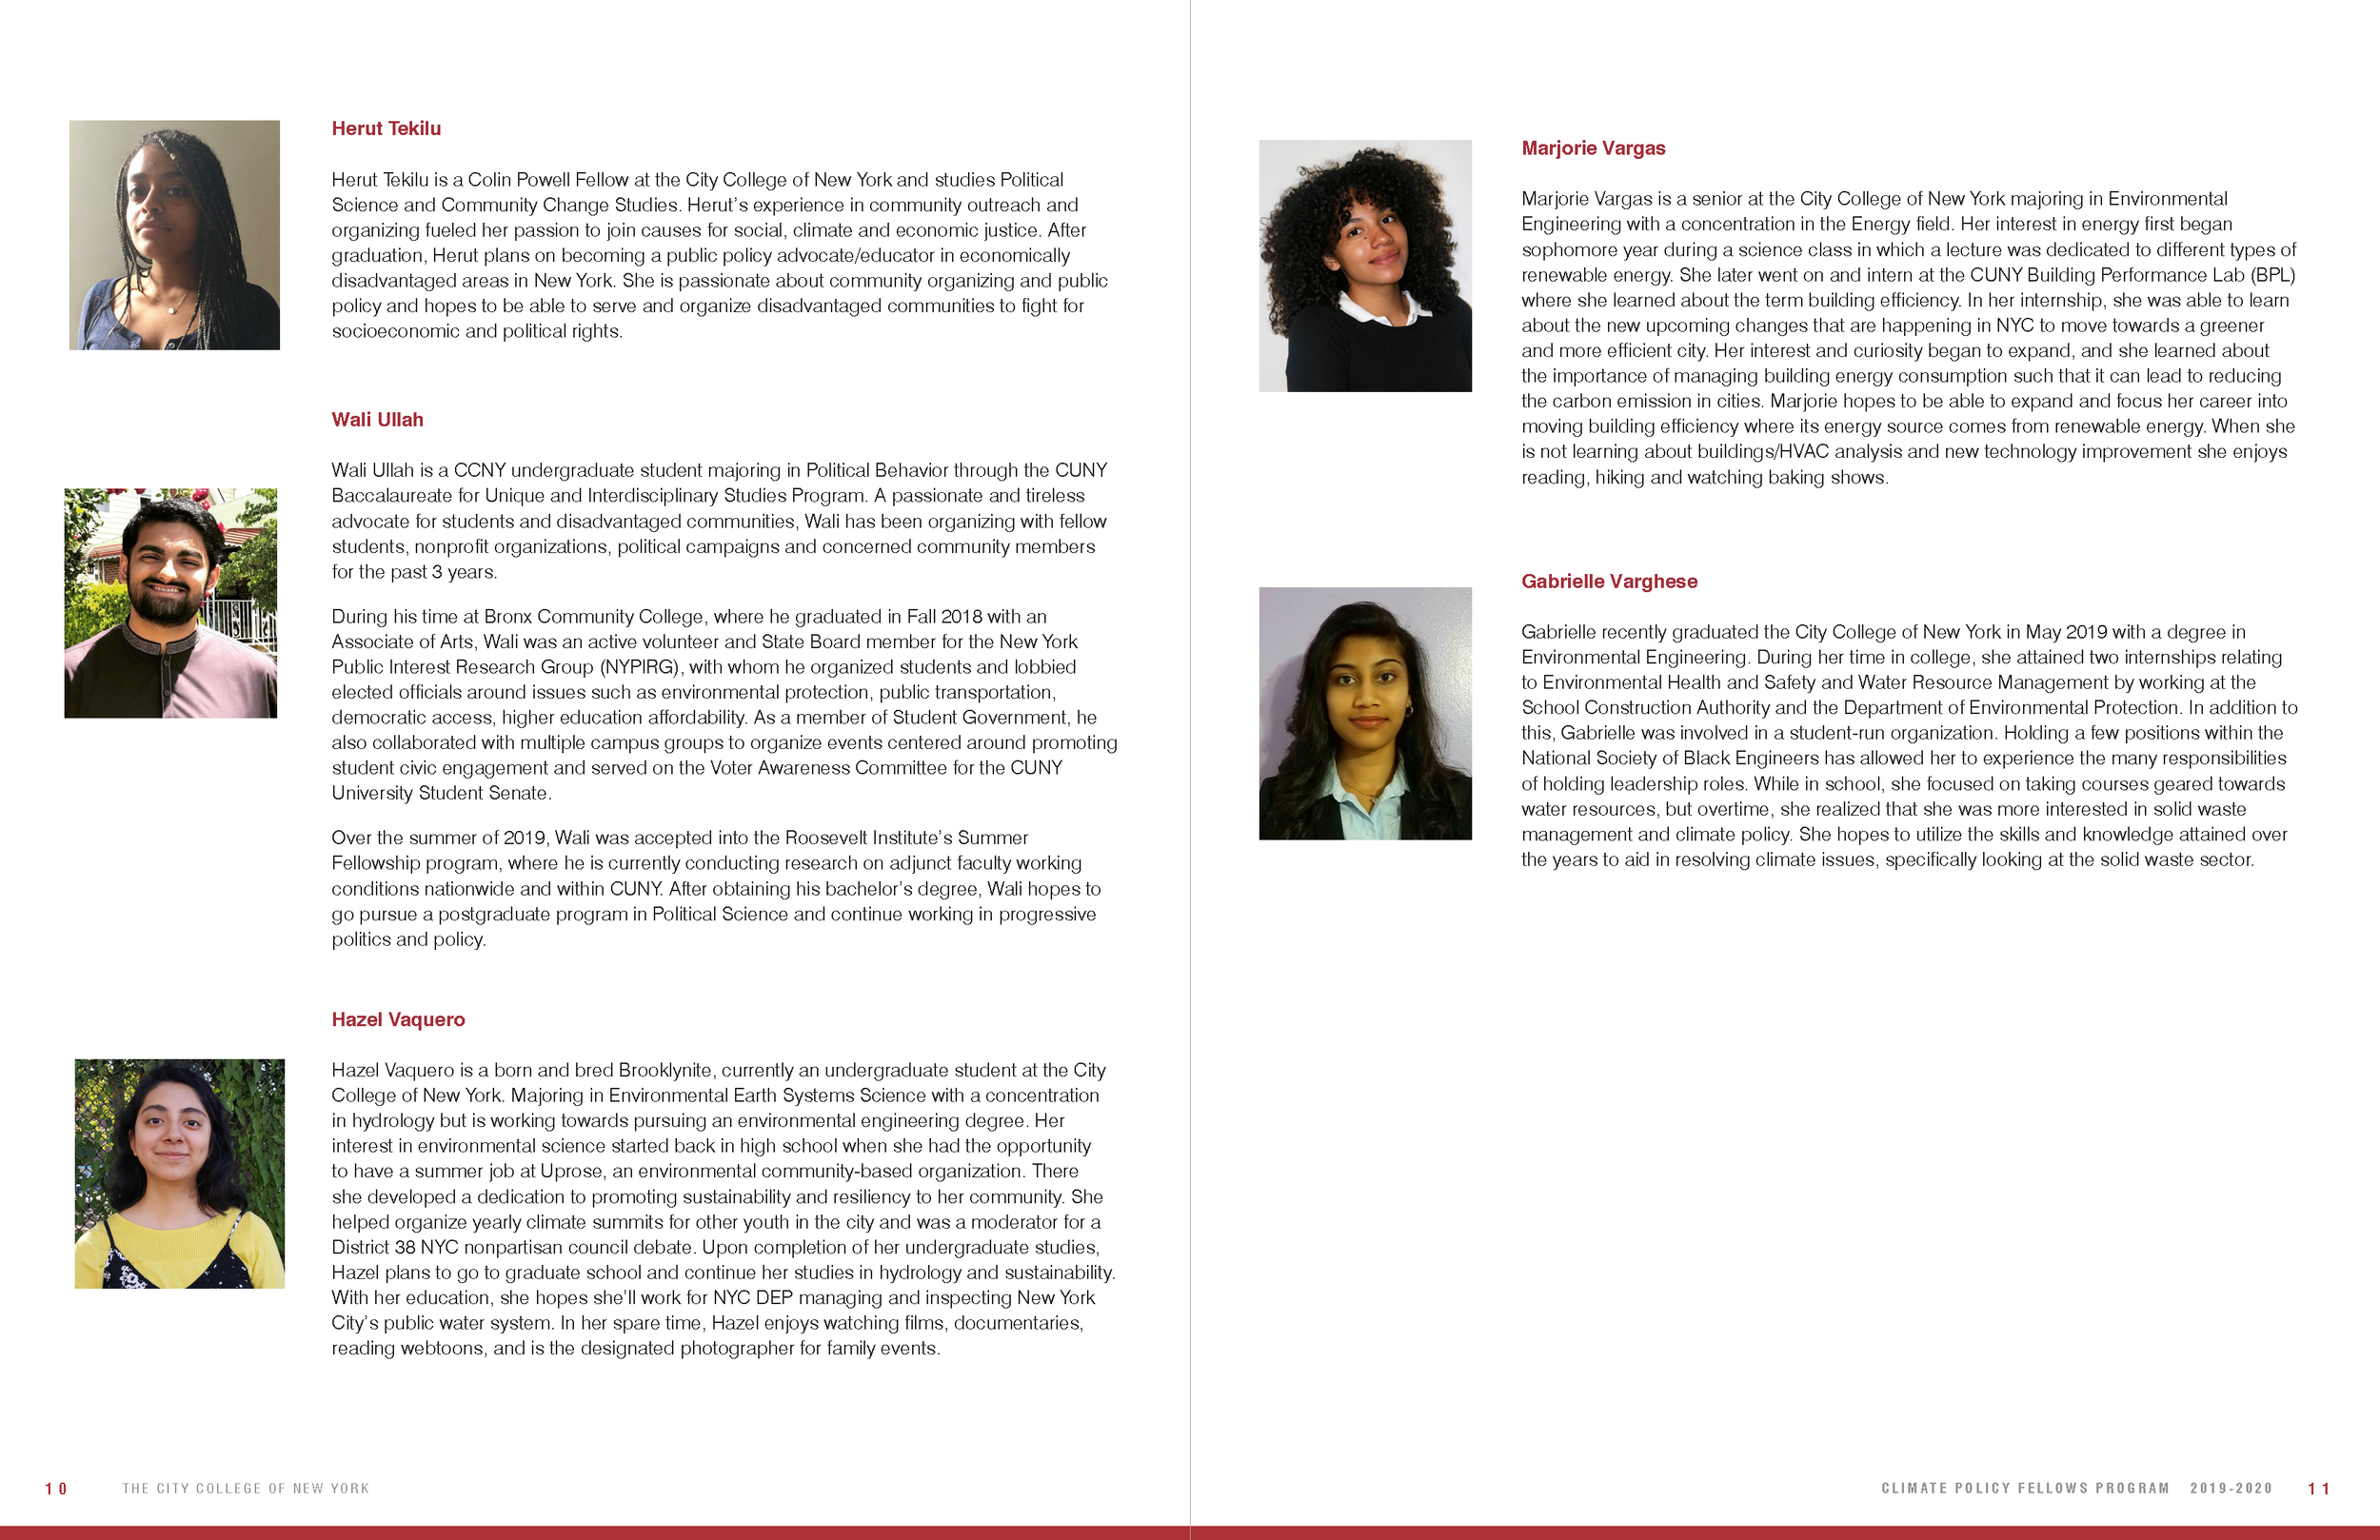 Climate Policy Fellows, Bios_FINAL_Page_6.png